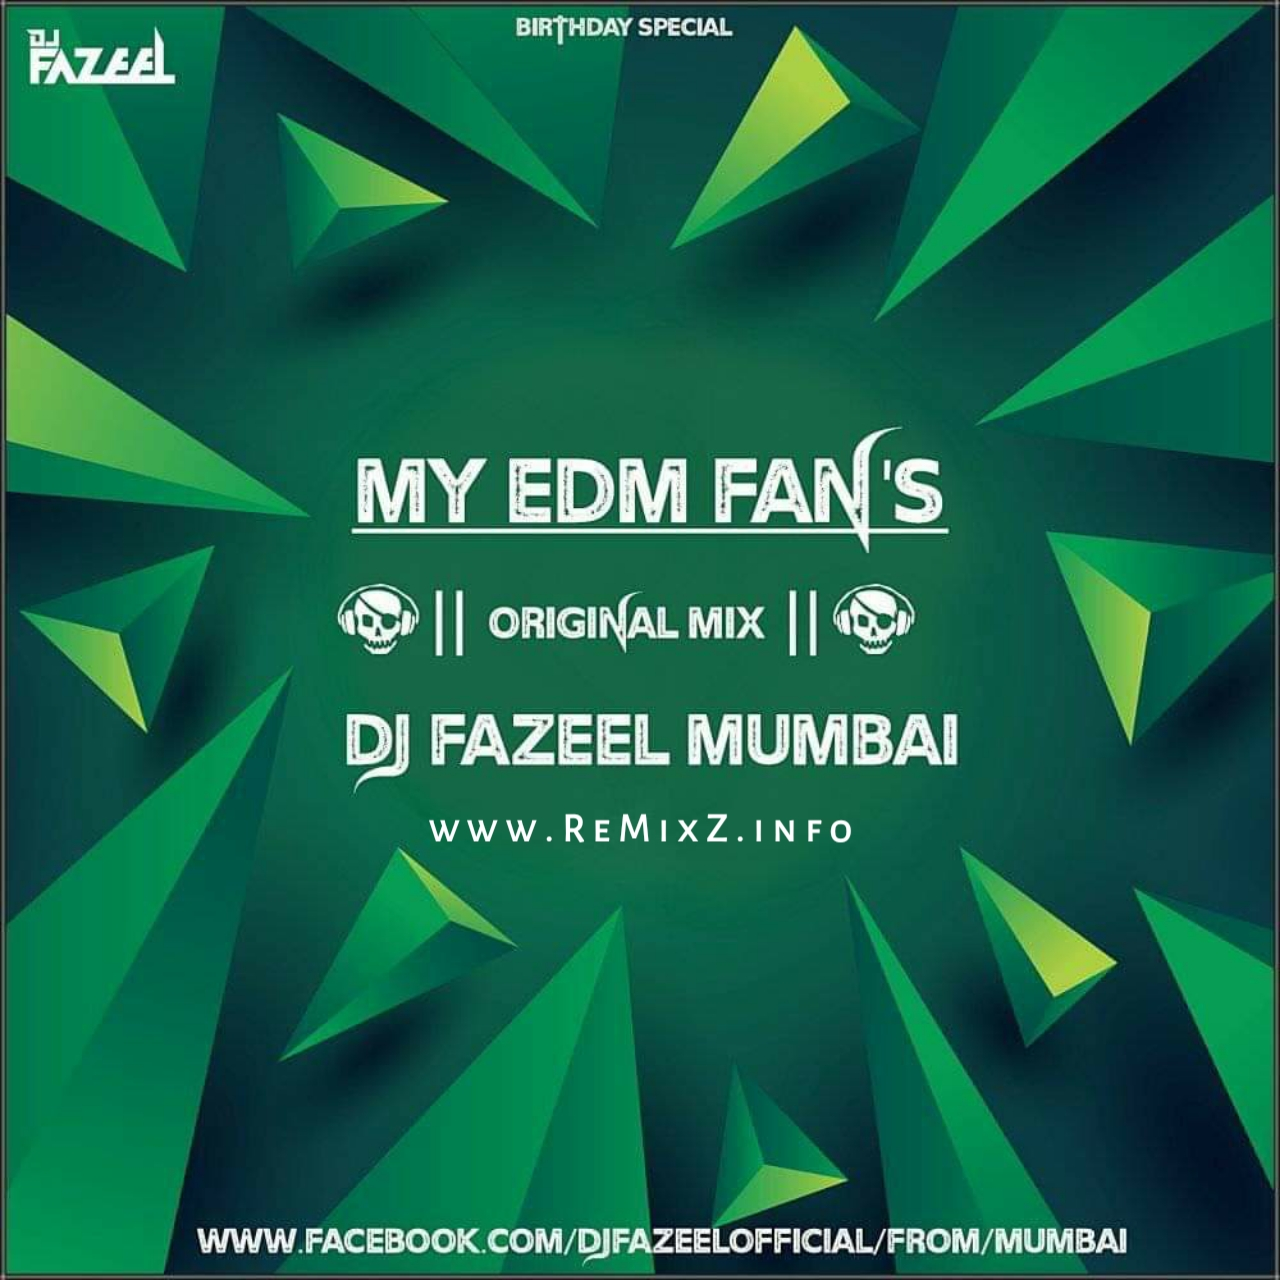 my-edm-fans-original-mix-dj-fazeel.jpg